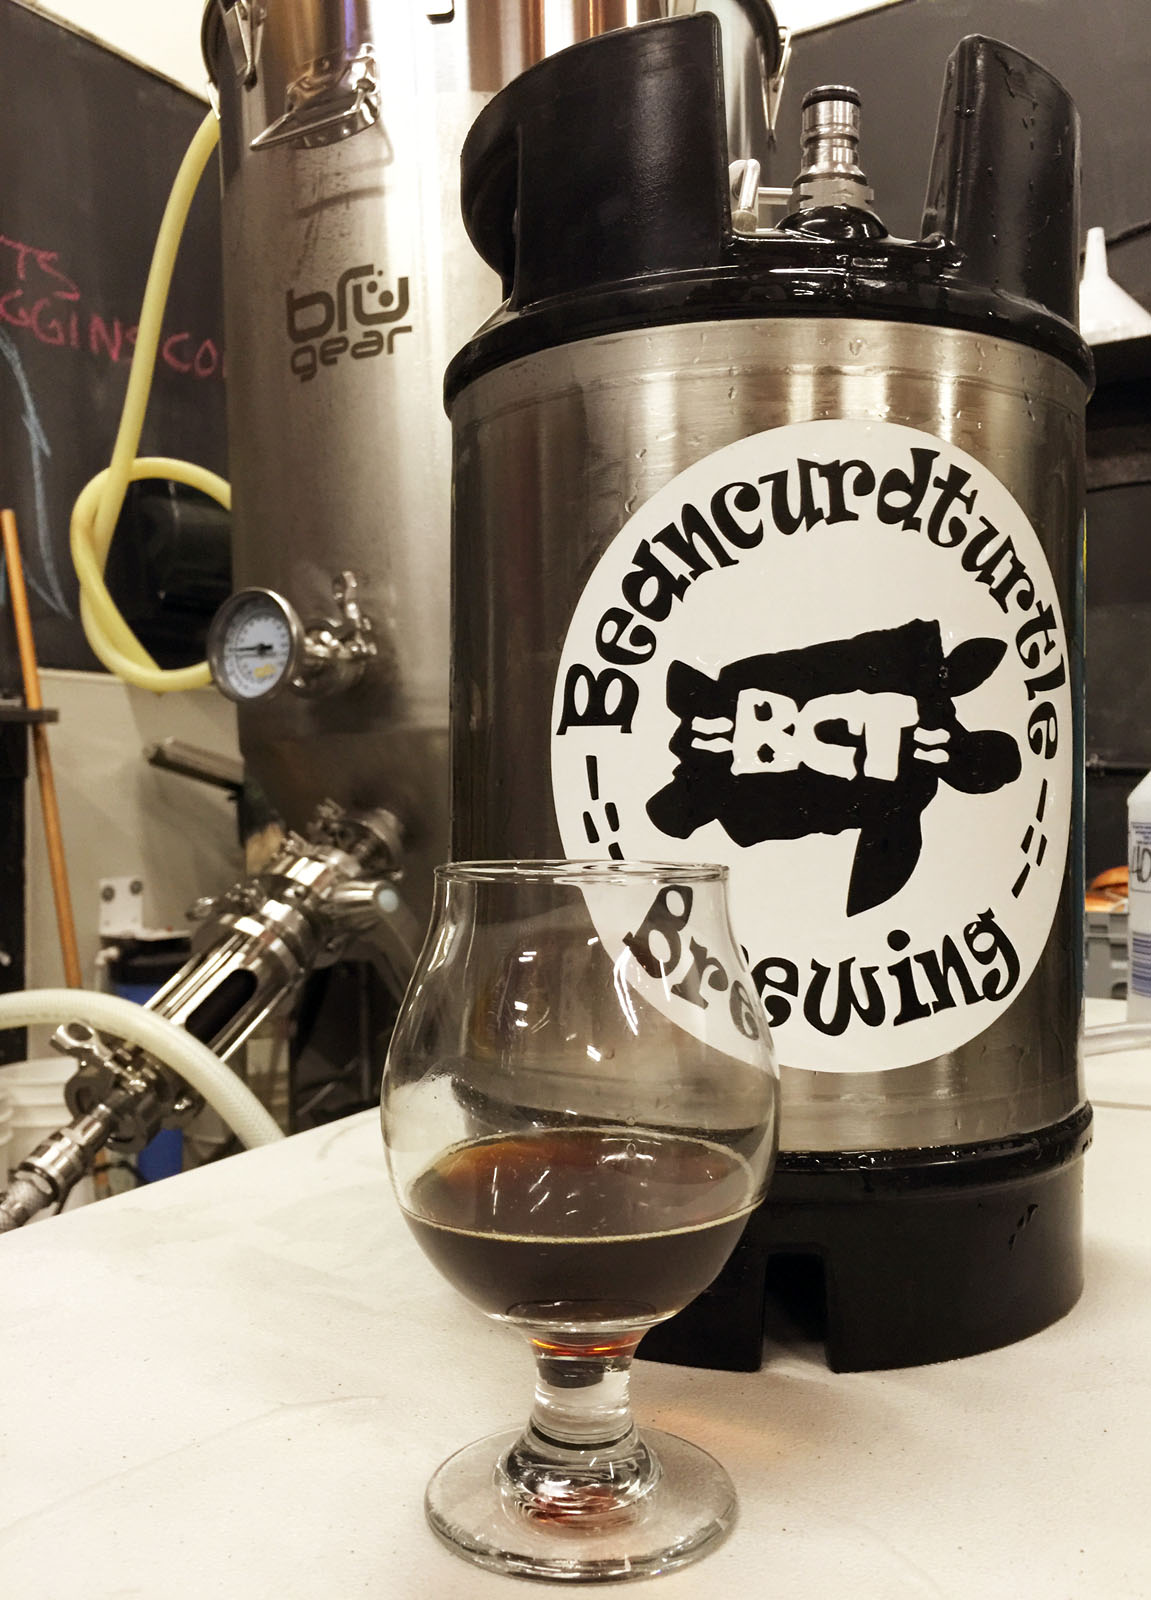 A wee keg of The Dub, by BCT Brewing Project.